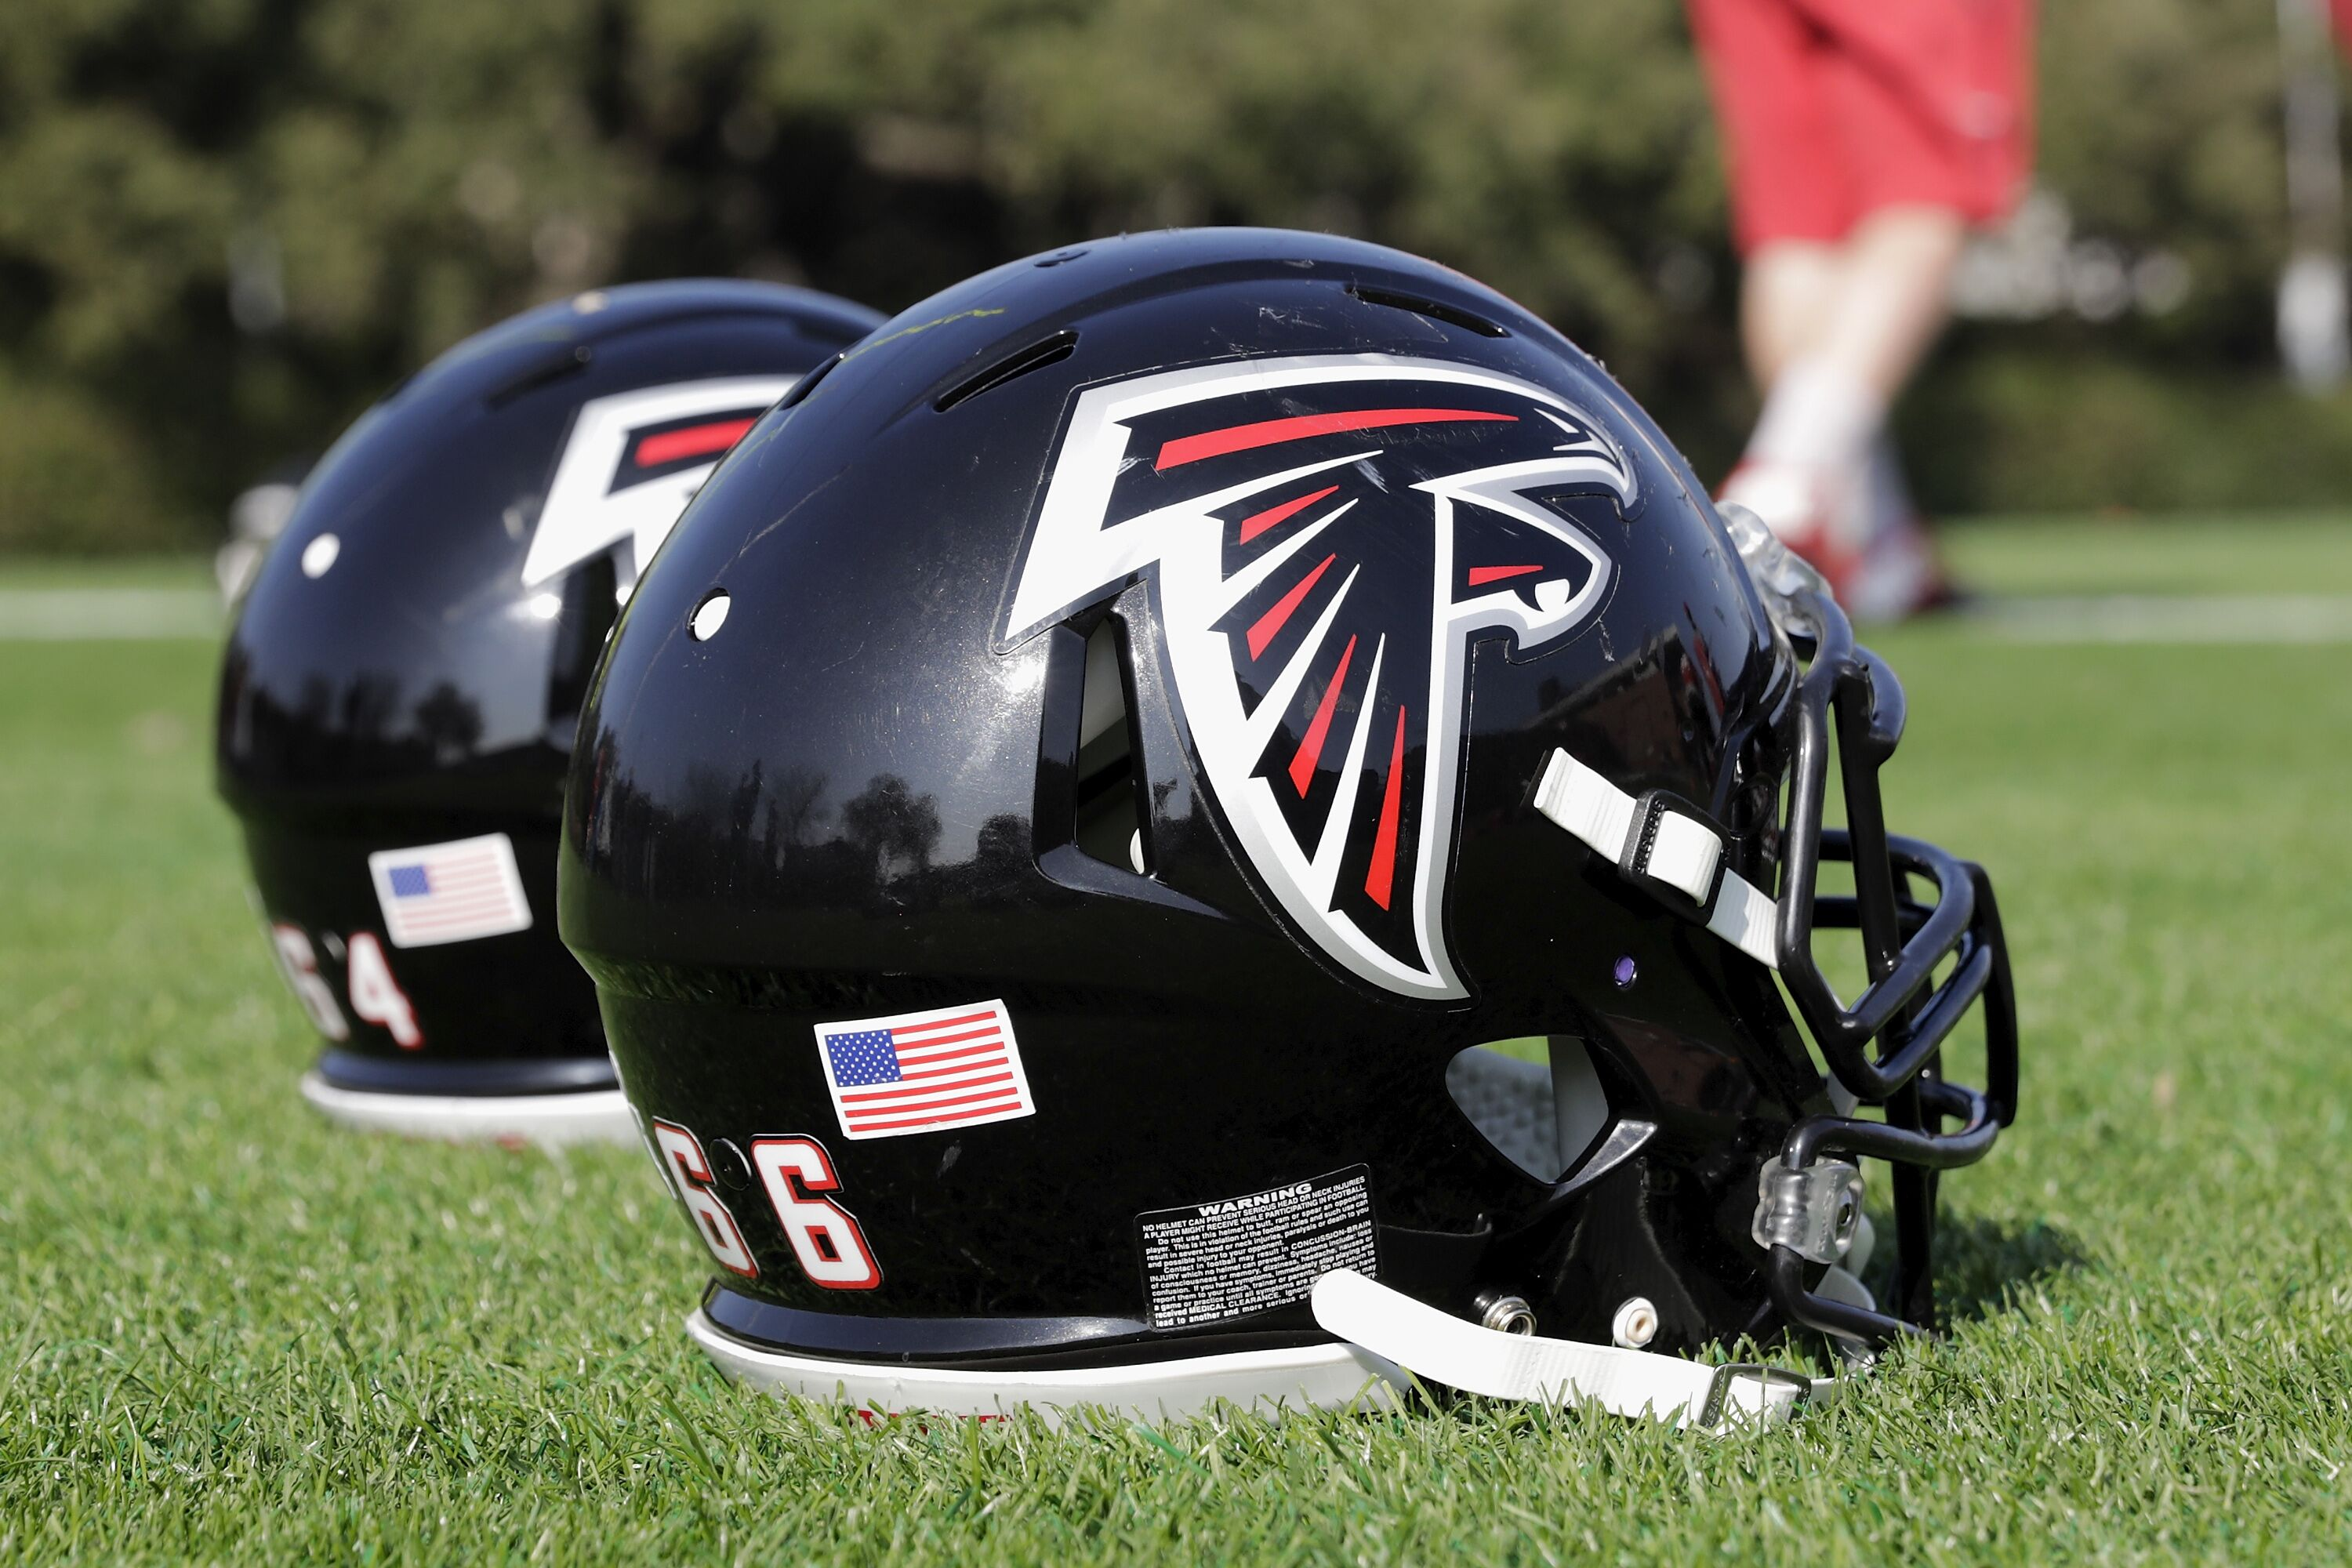 Injury Bug To The Atlanta Falcons: We Meet Again